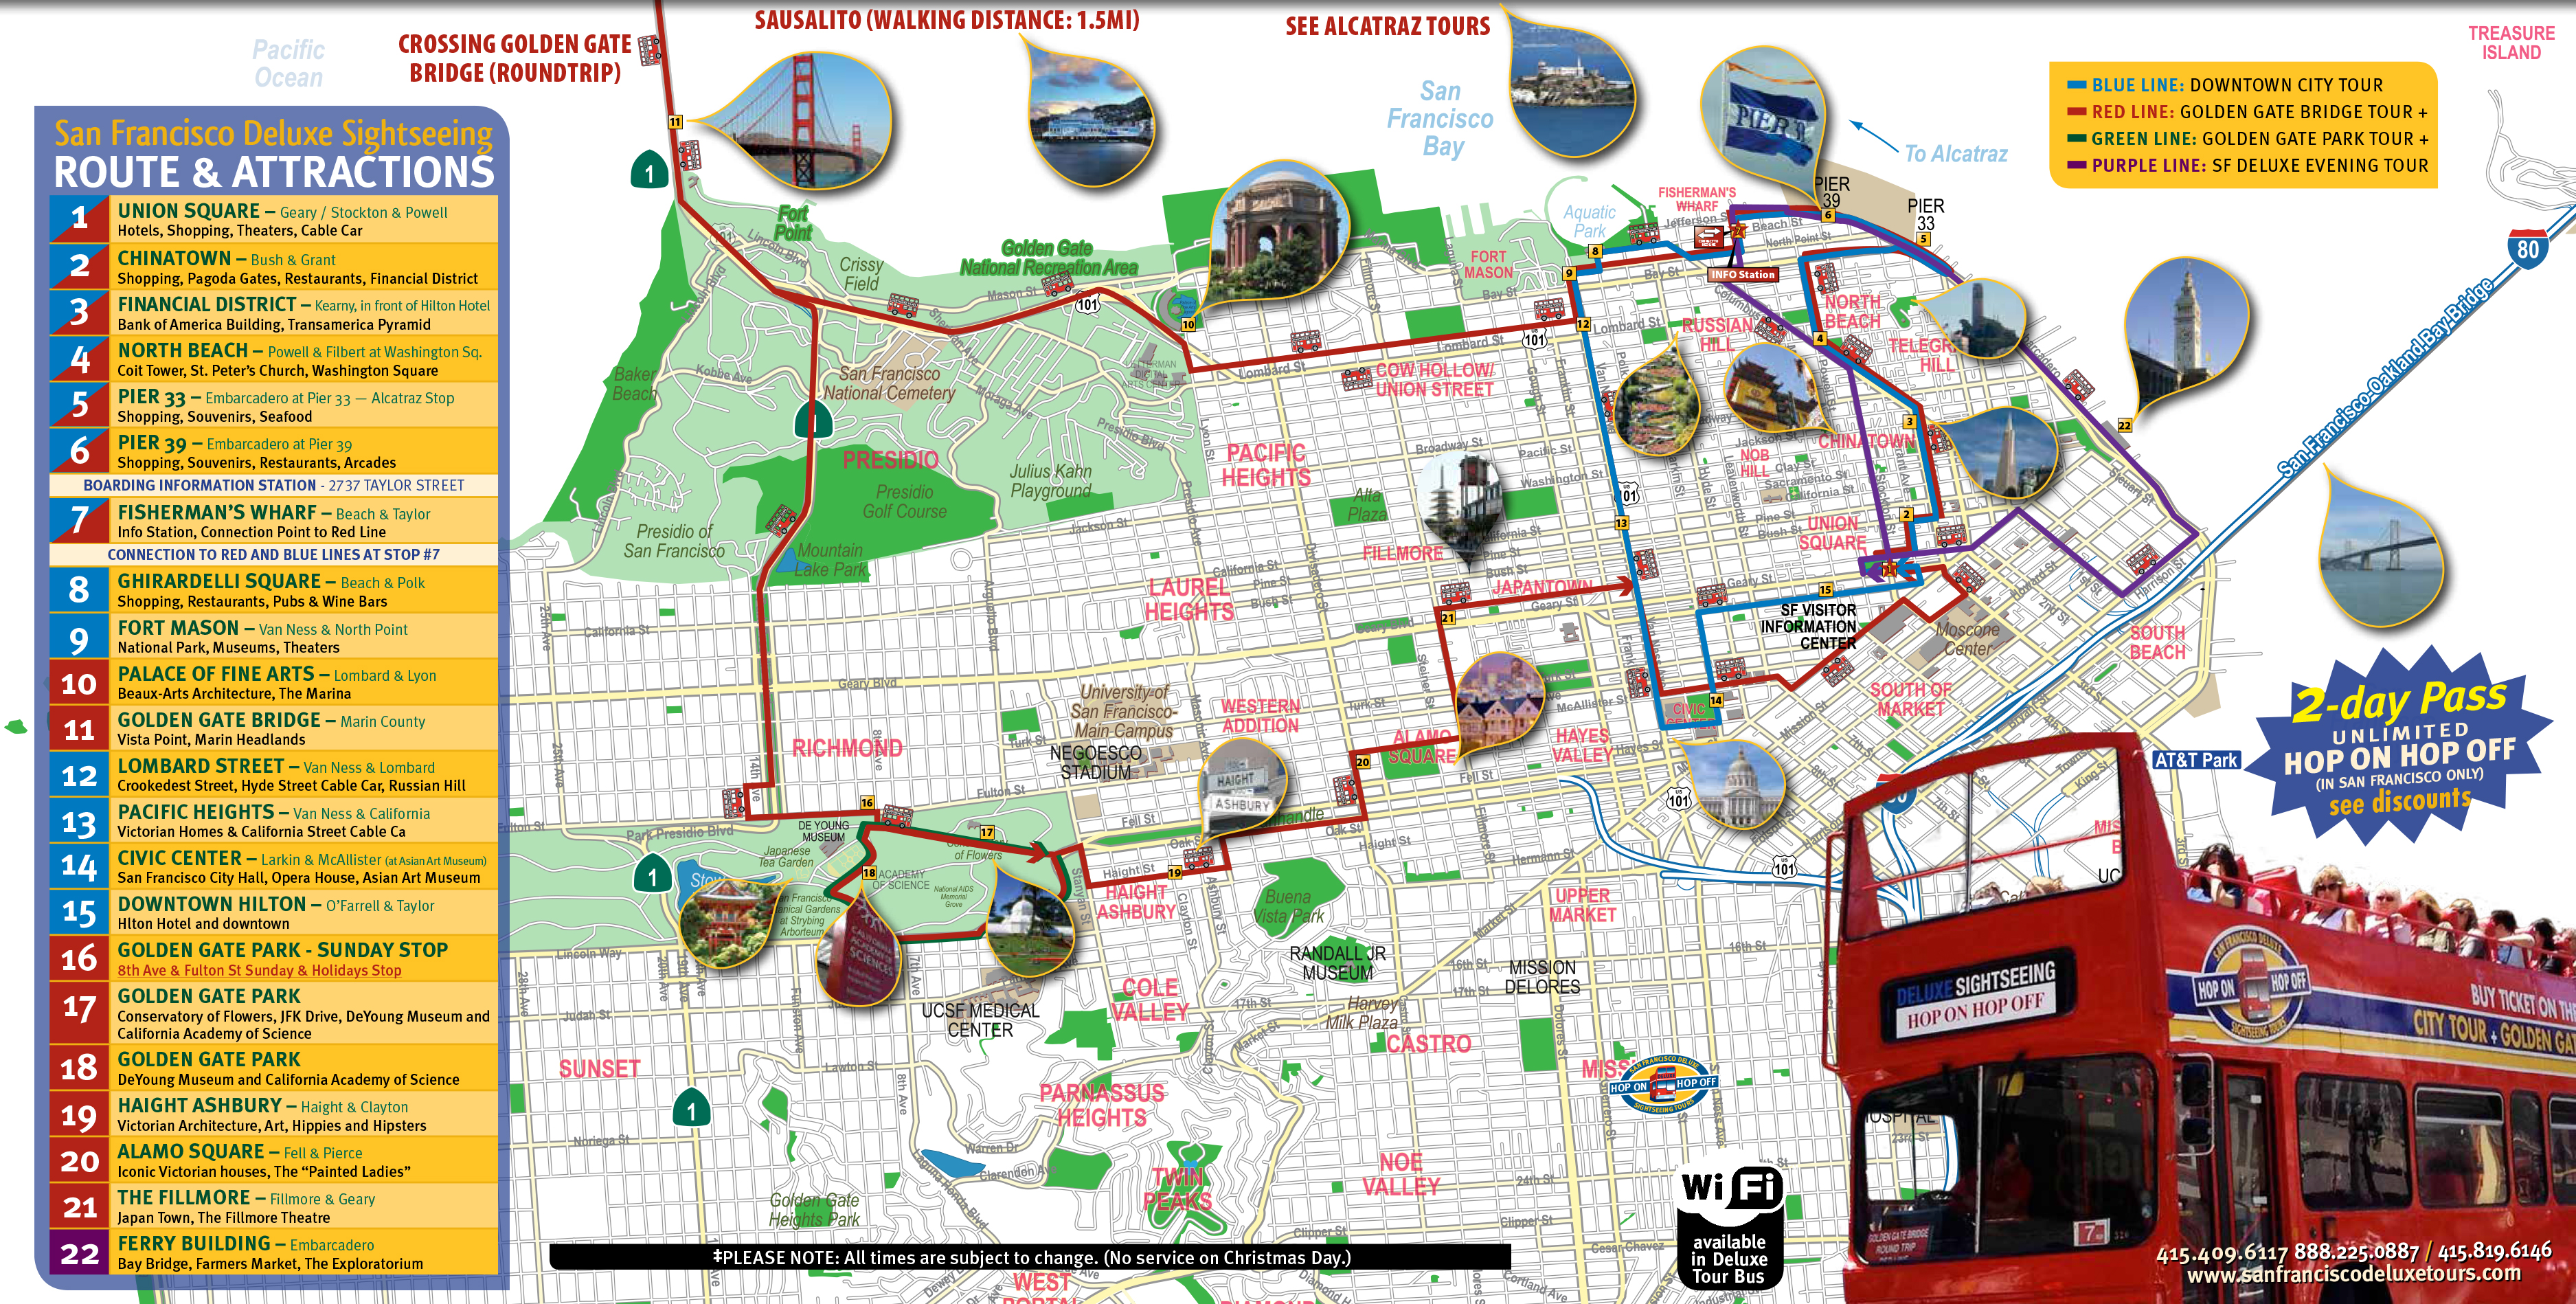 San francisco tourist sites map – Tourist Attractions In San Francisco Map